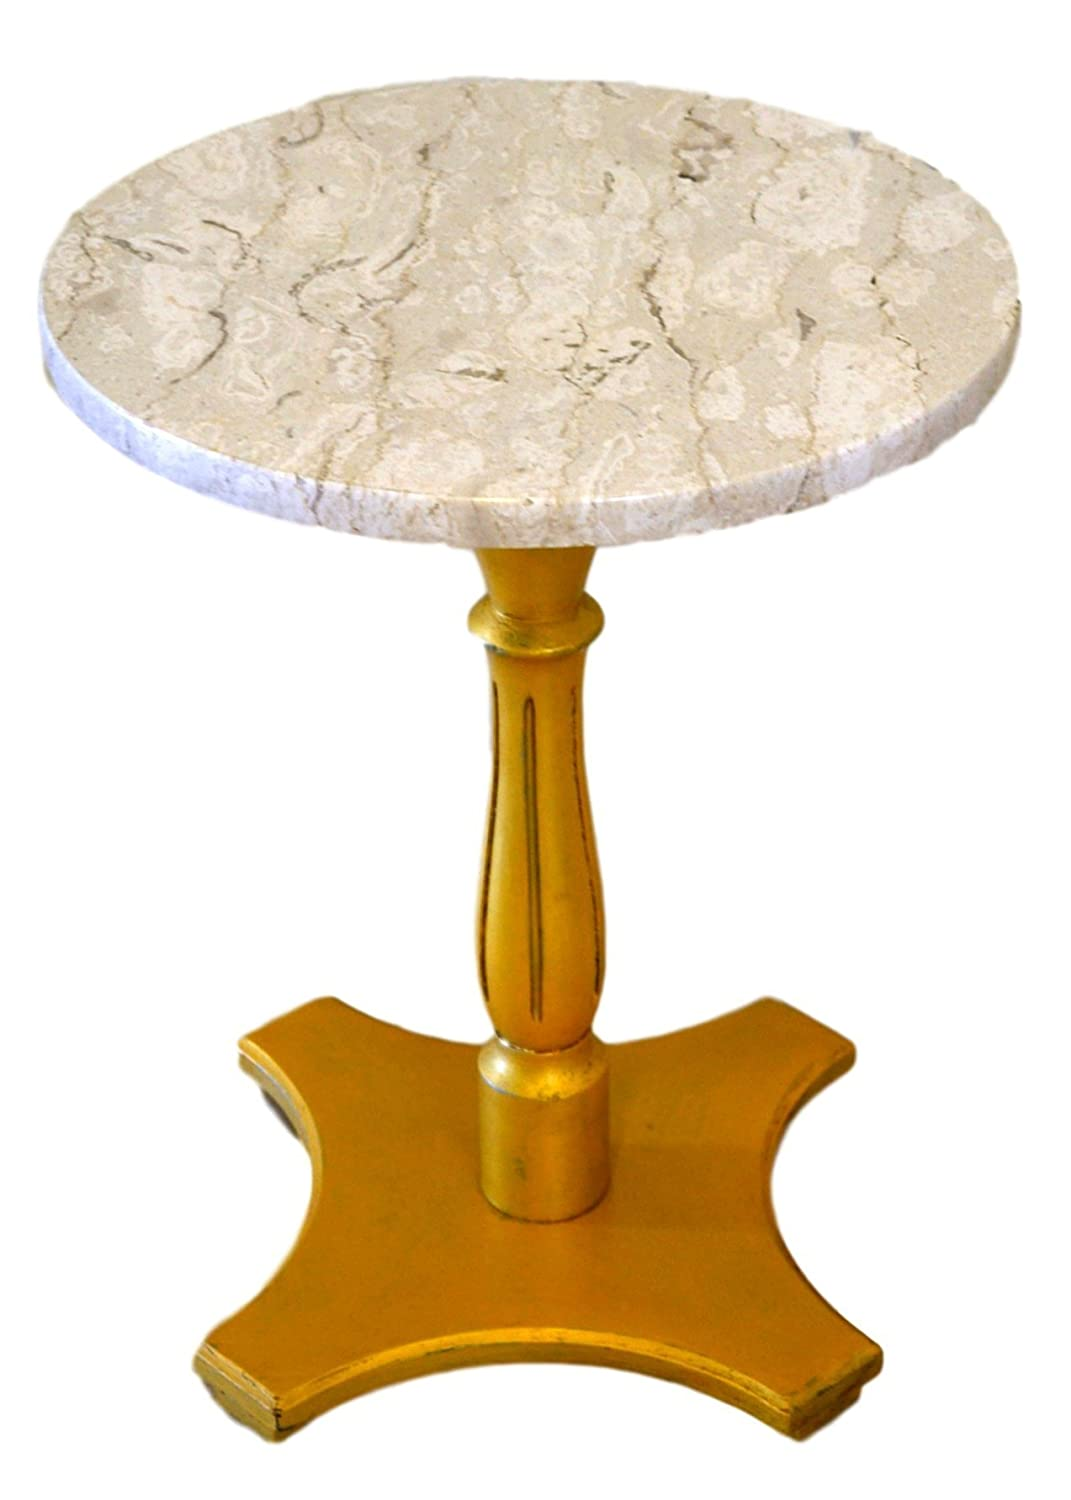 - Amazon.com: Round Marble Top Accent Table Gold Pedestal Base: Handmade